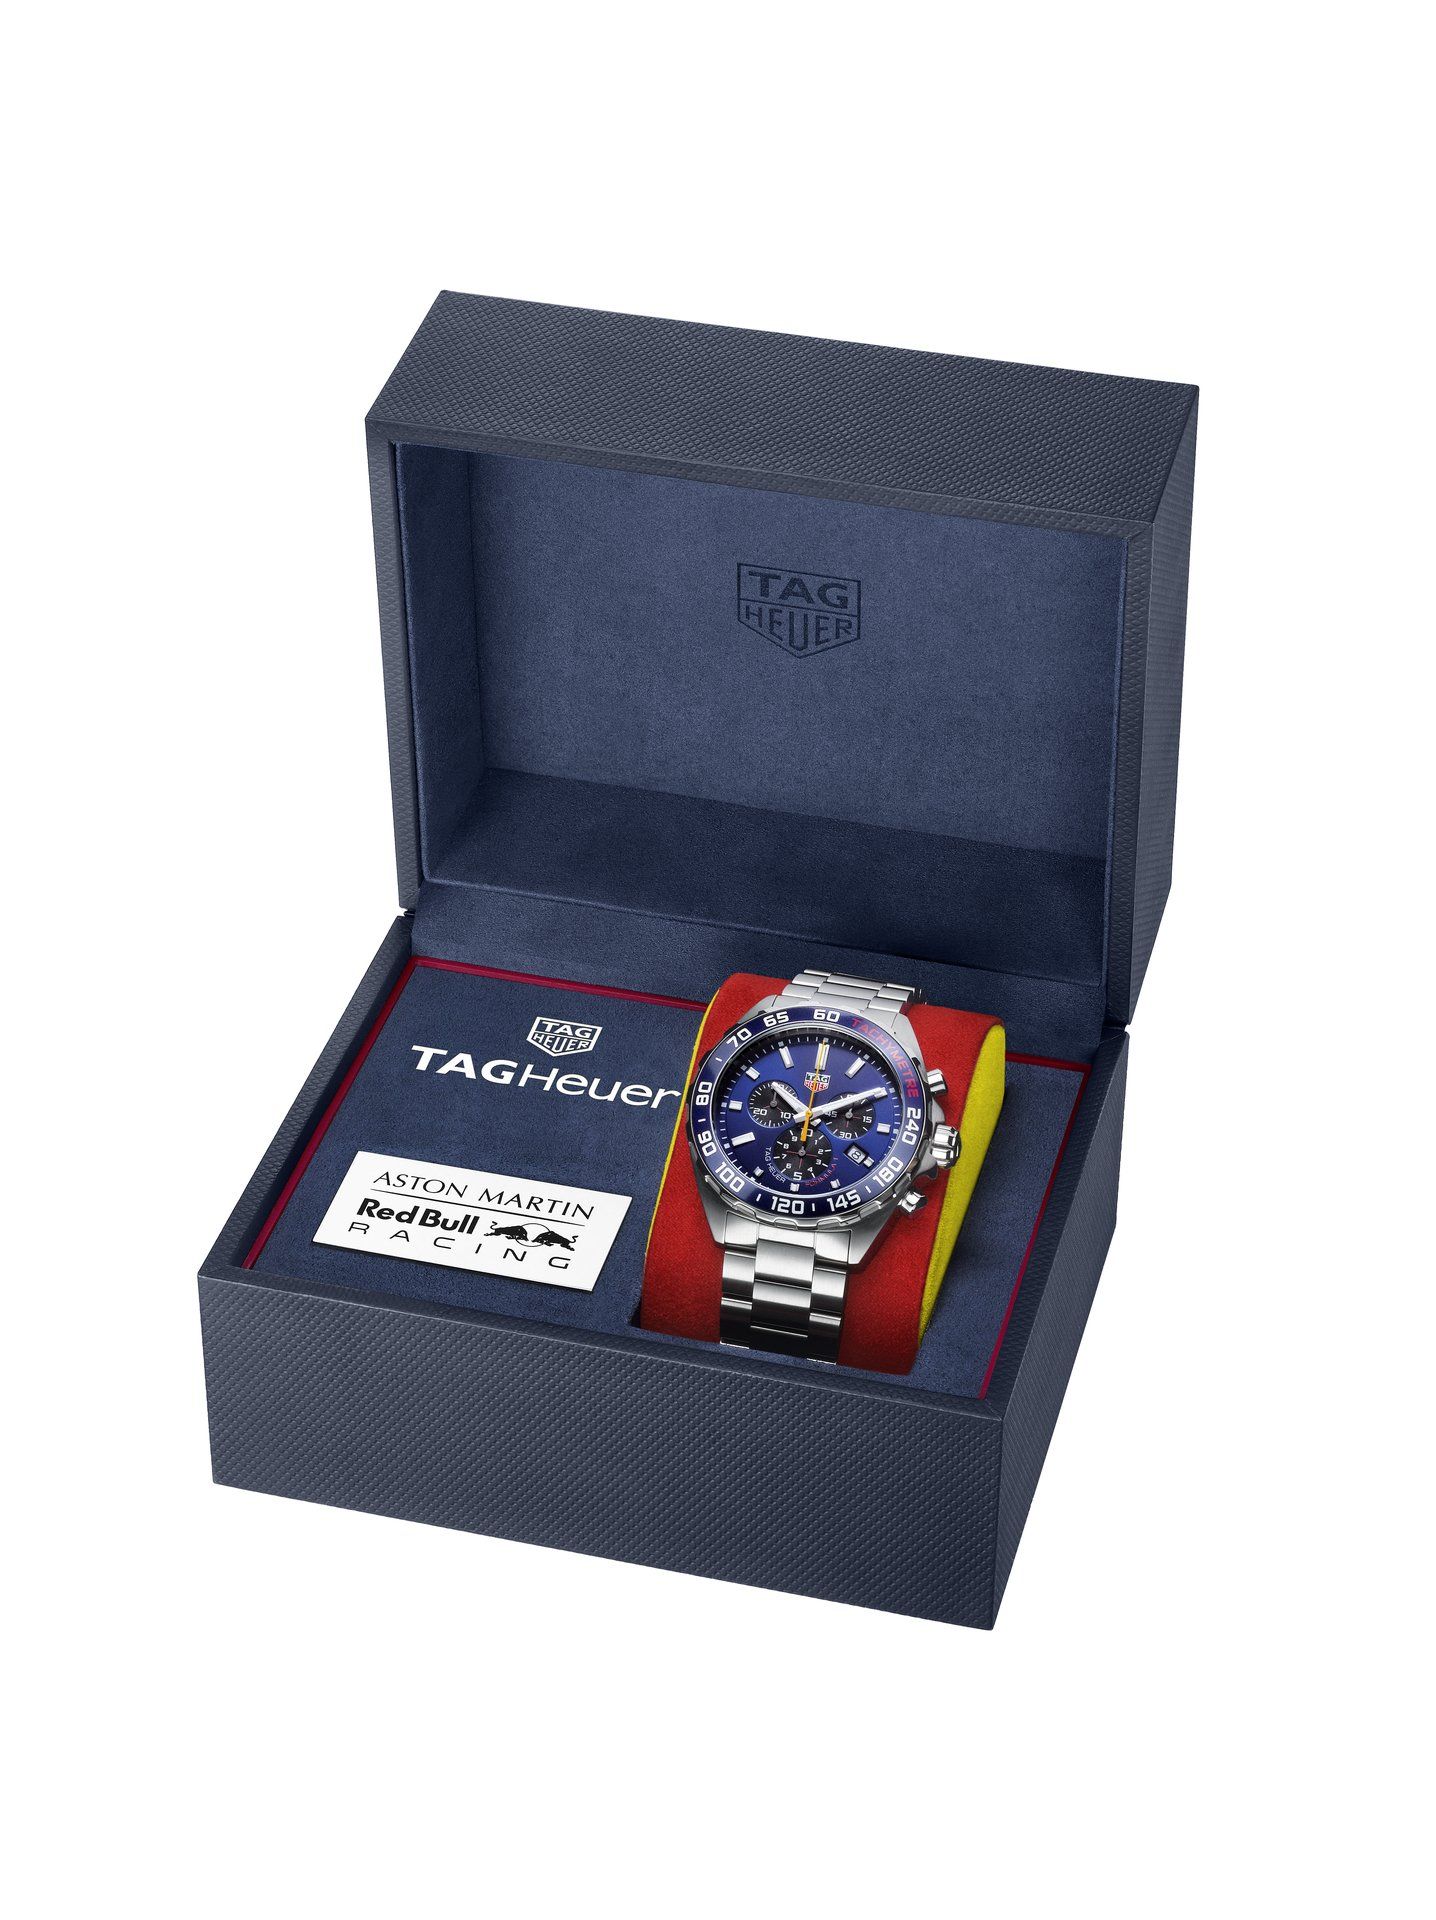 Tag Heuer Formula 1 Aston Martin Red Bull Racing Special Edition 2020 Watch I Love